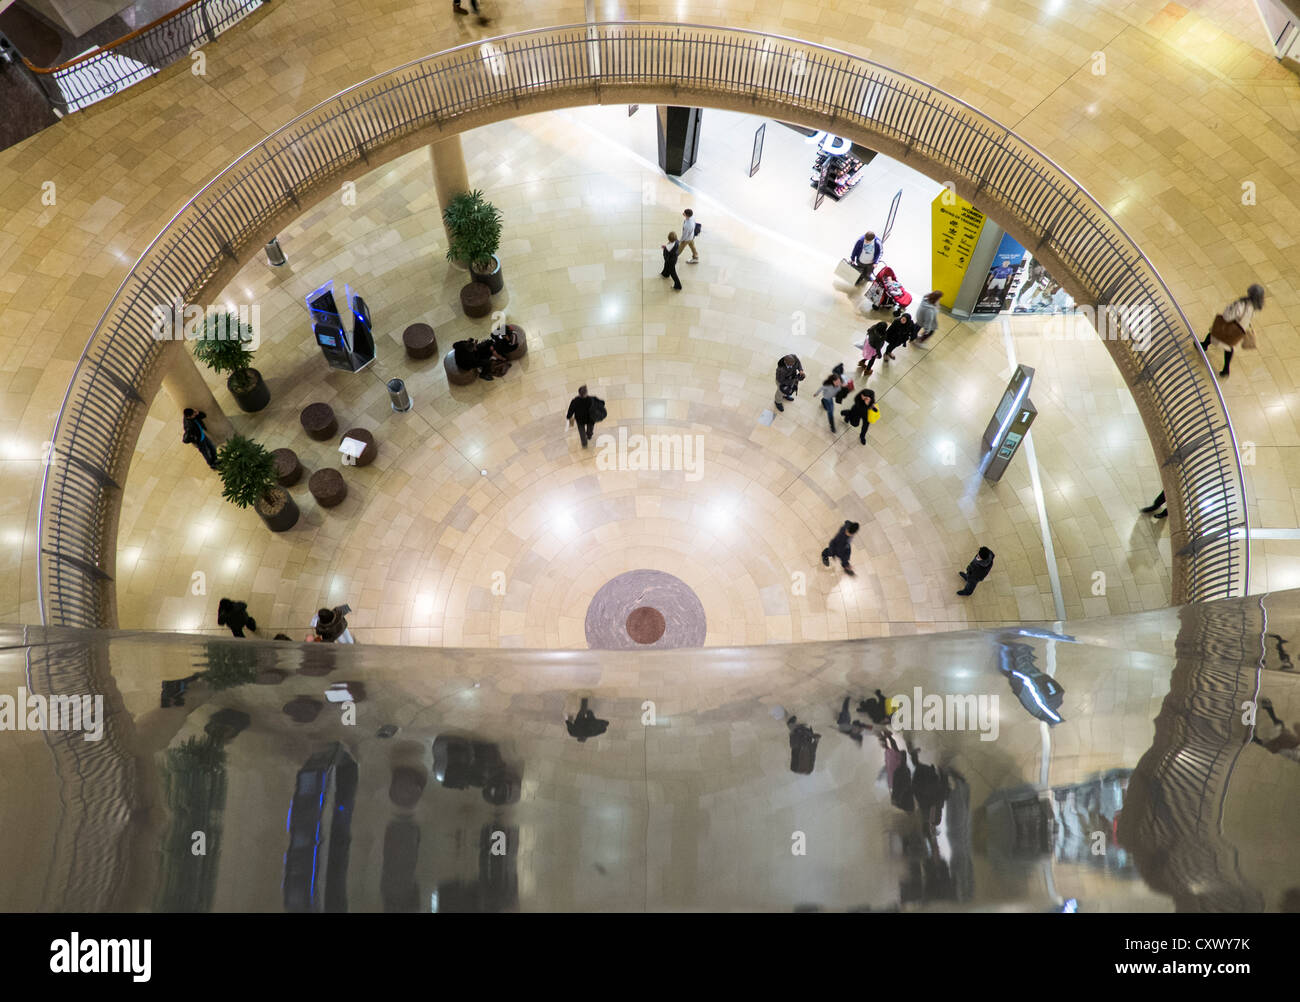 Part of the Bull Ring Shopping Centre in Birmingham, West Midlands as seen from the Selfridges gallery. - Stock Image